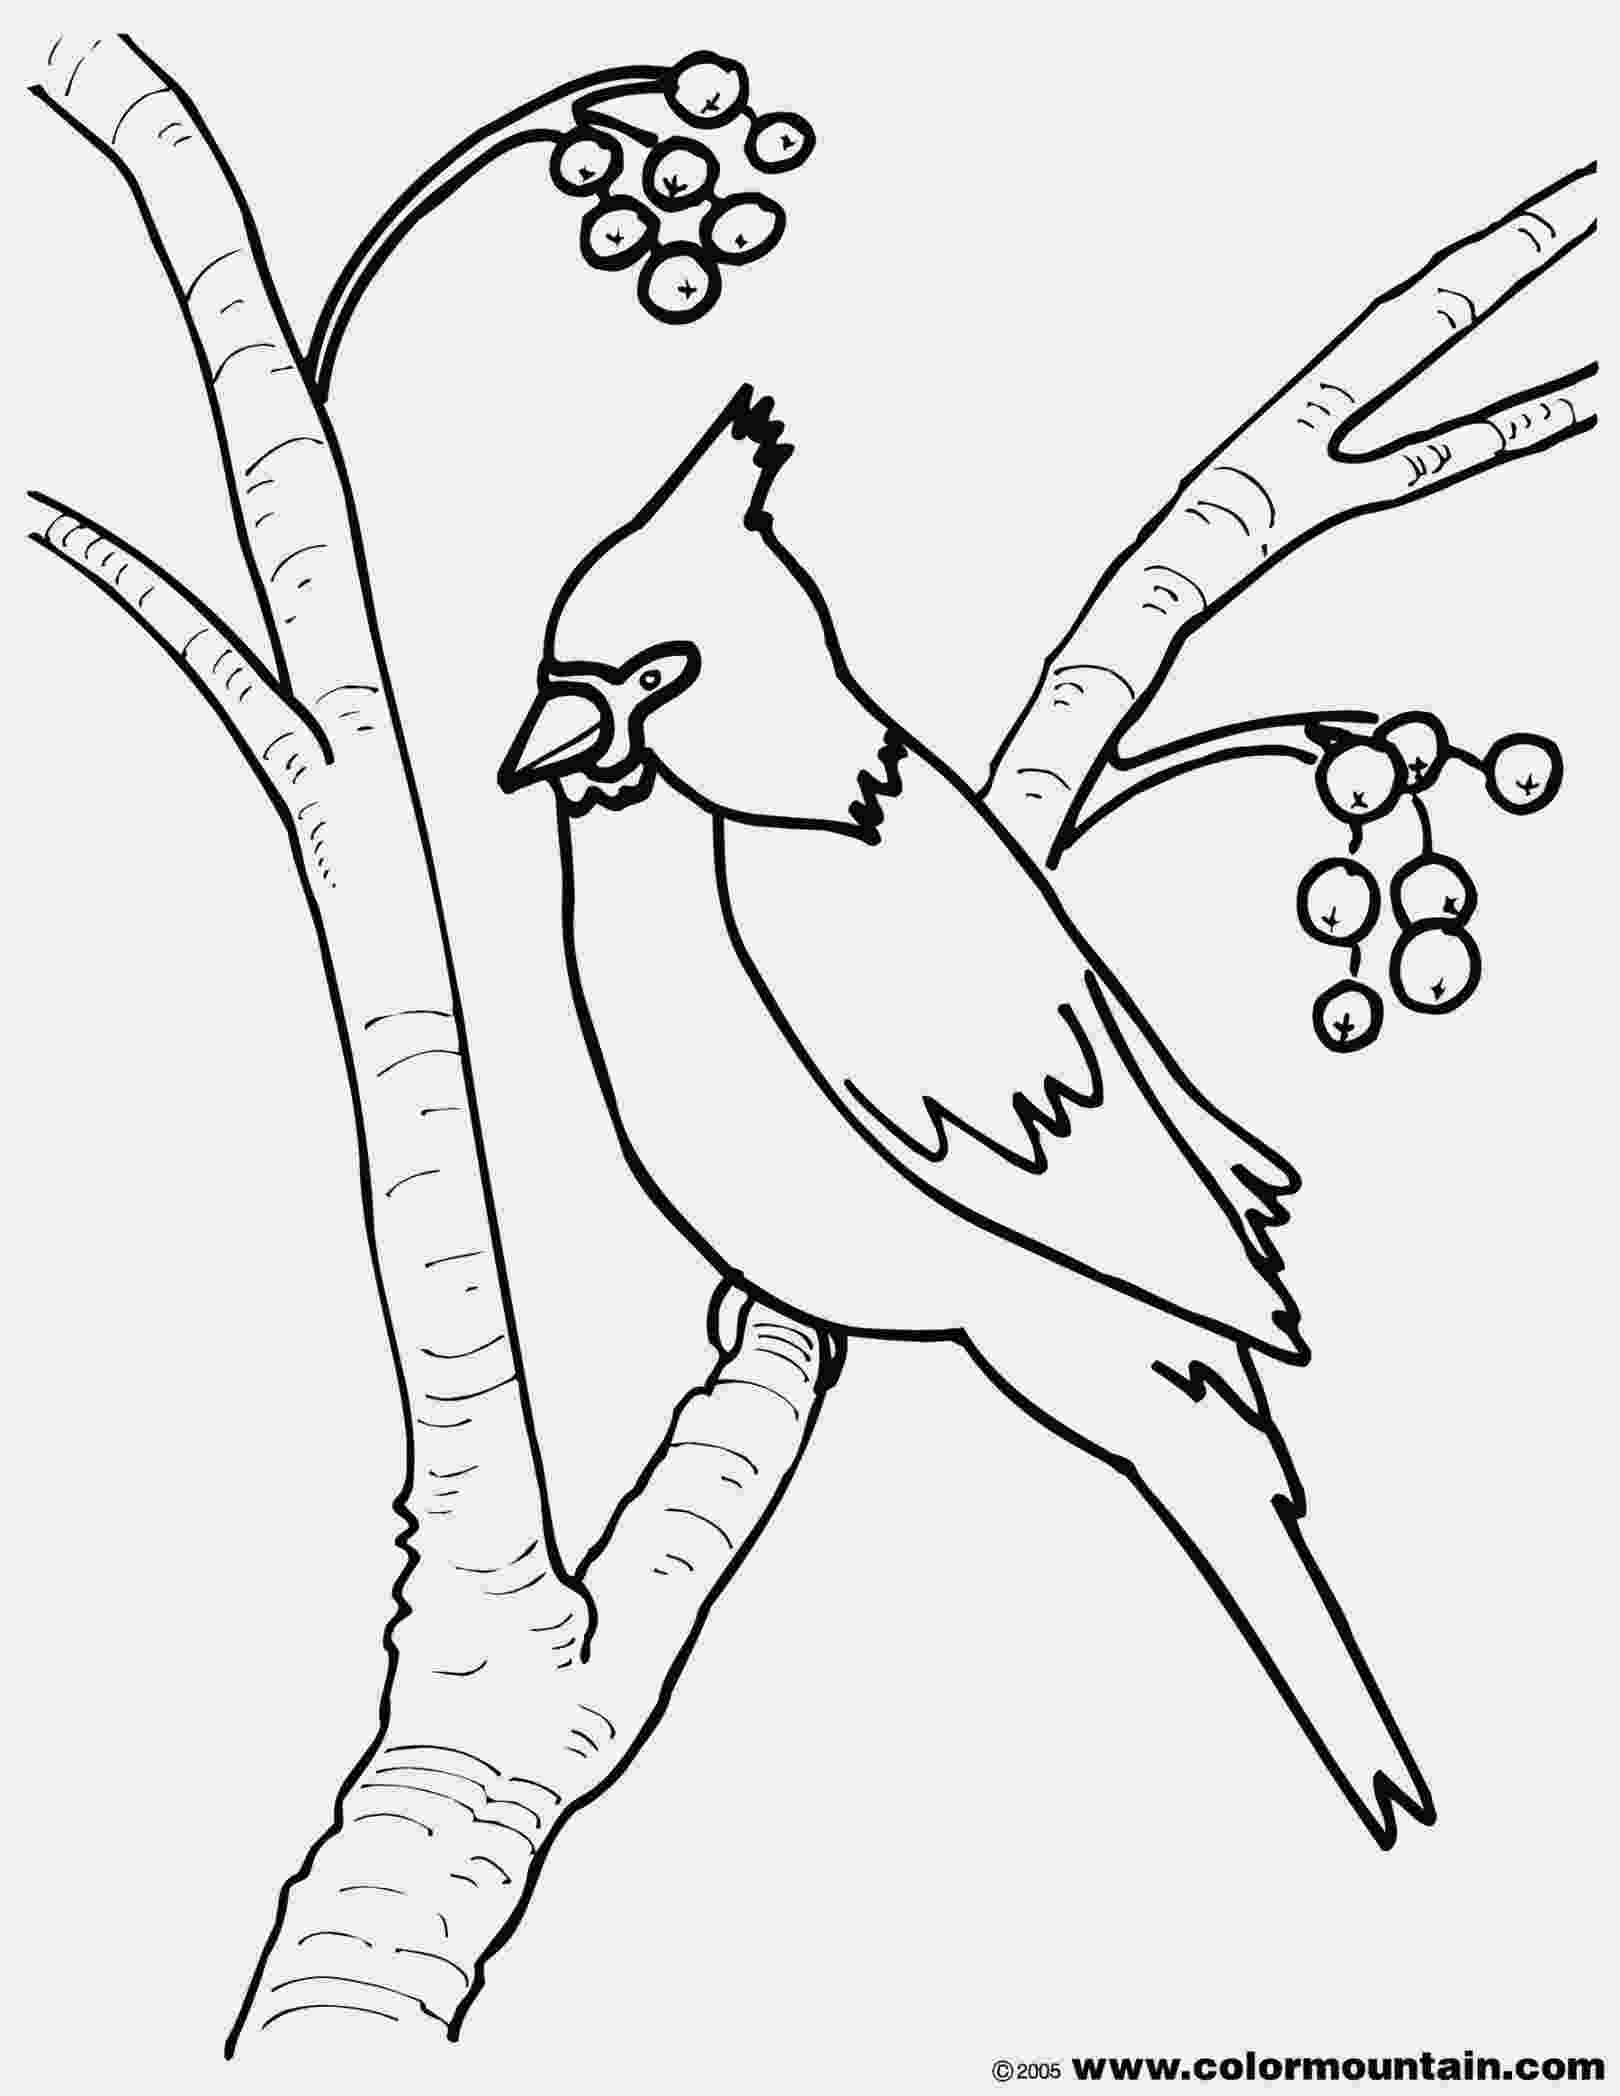 cardinal bird coloring page cardinal bird coloring pages gtgt disney coloring pages page bird cardinal coloring